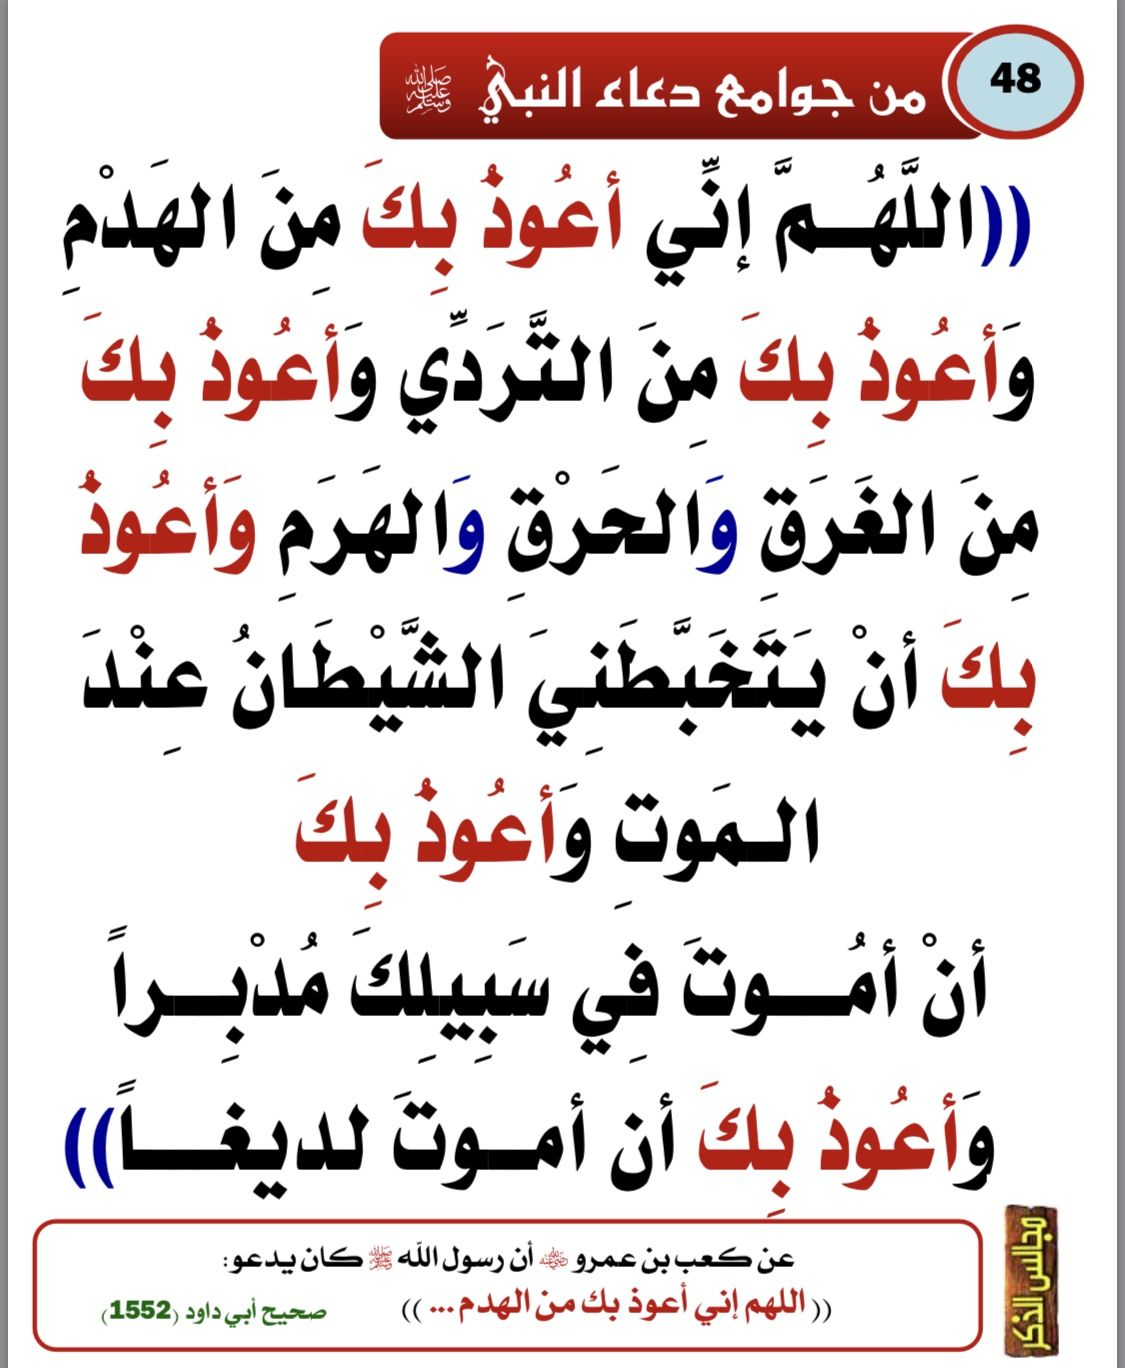 Pin By Ralamry On دعاء Islamic Phrases Islamic Quotes Islam Facts